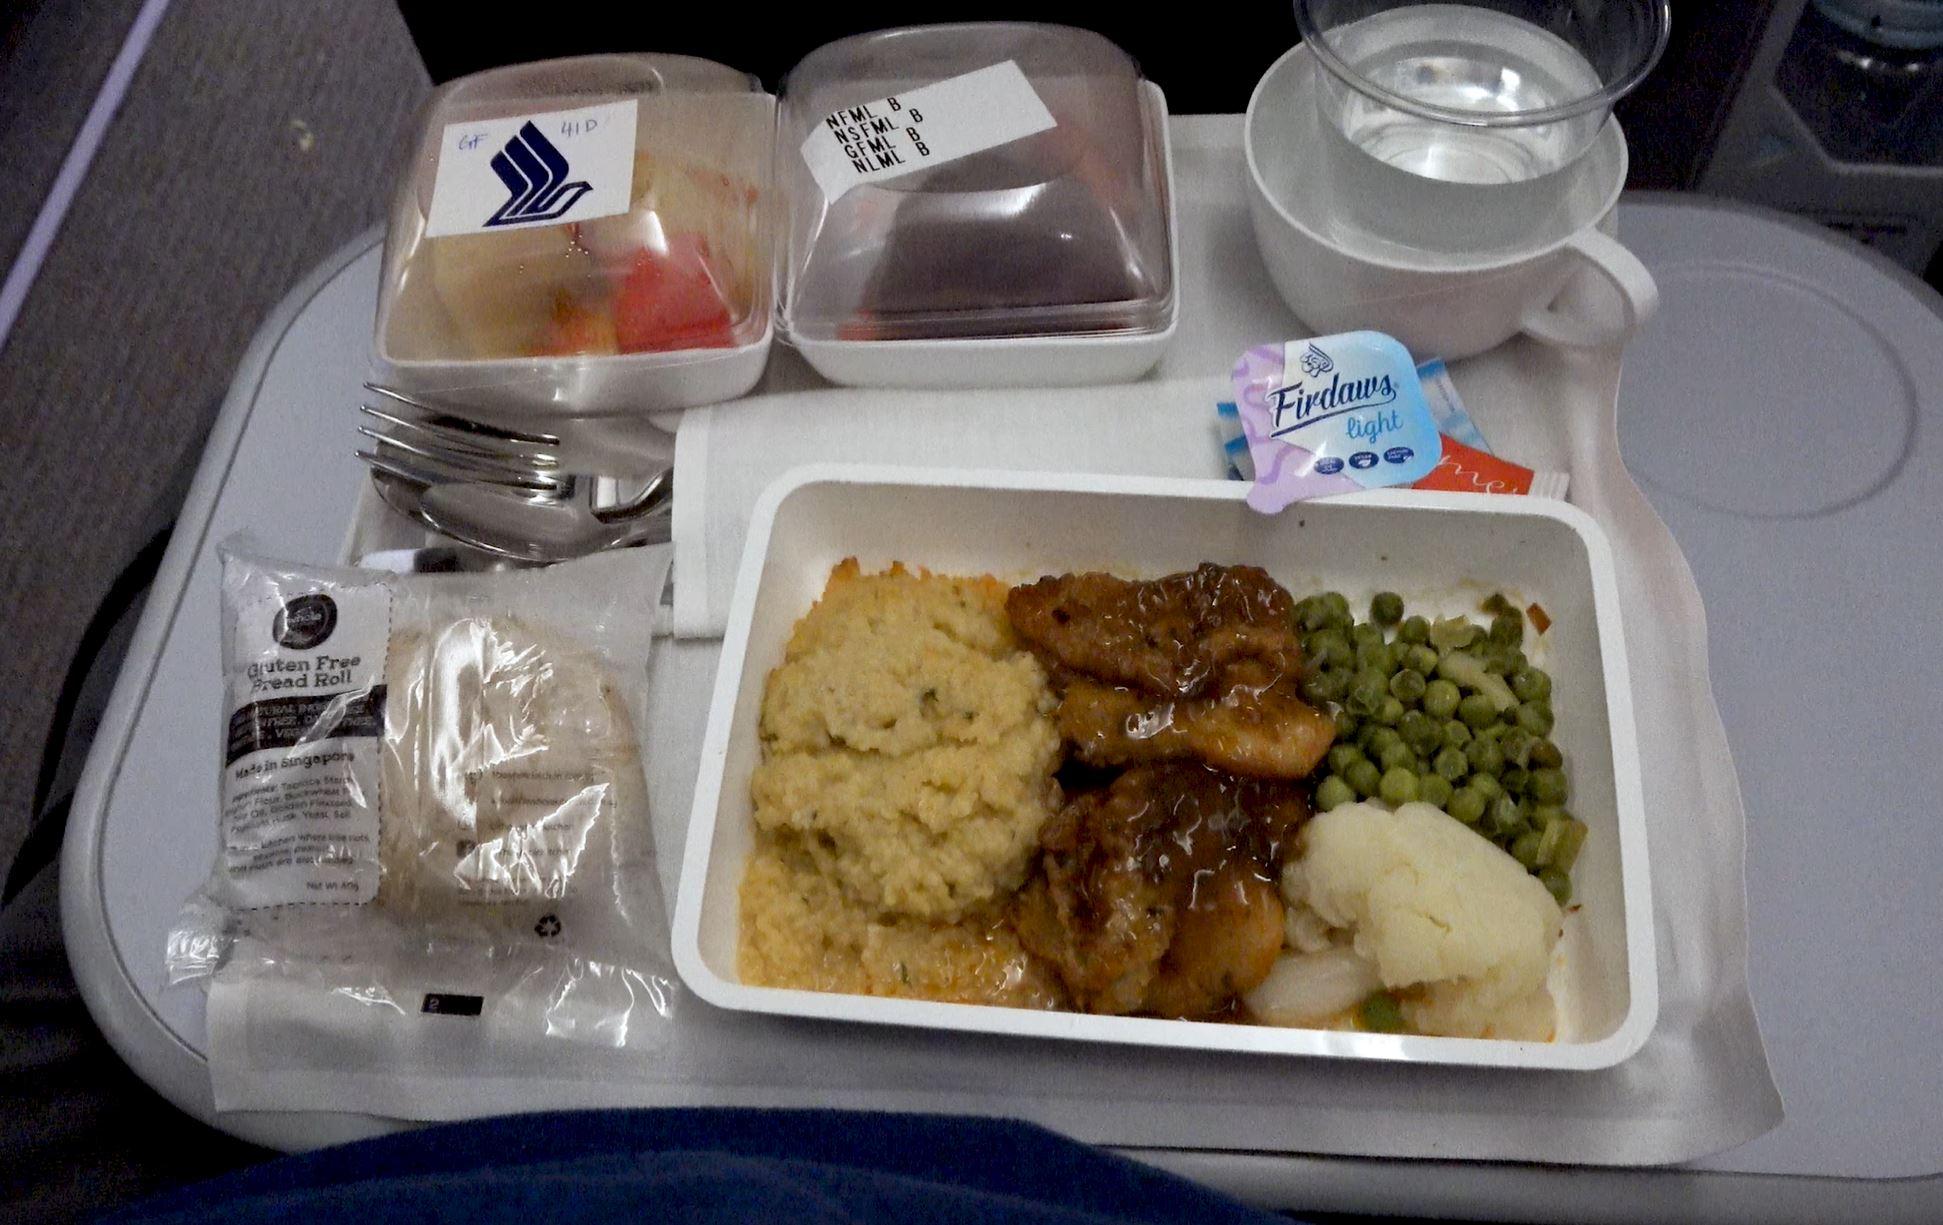 Singapore Airlines gluten free chicken supper